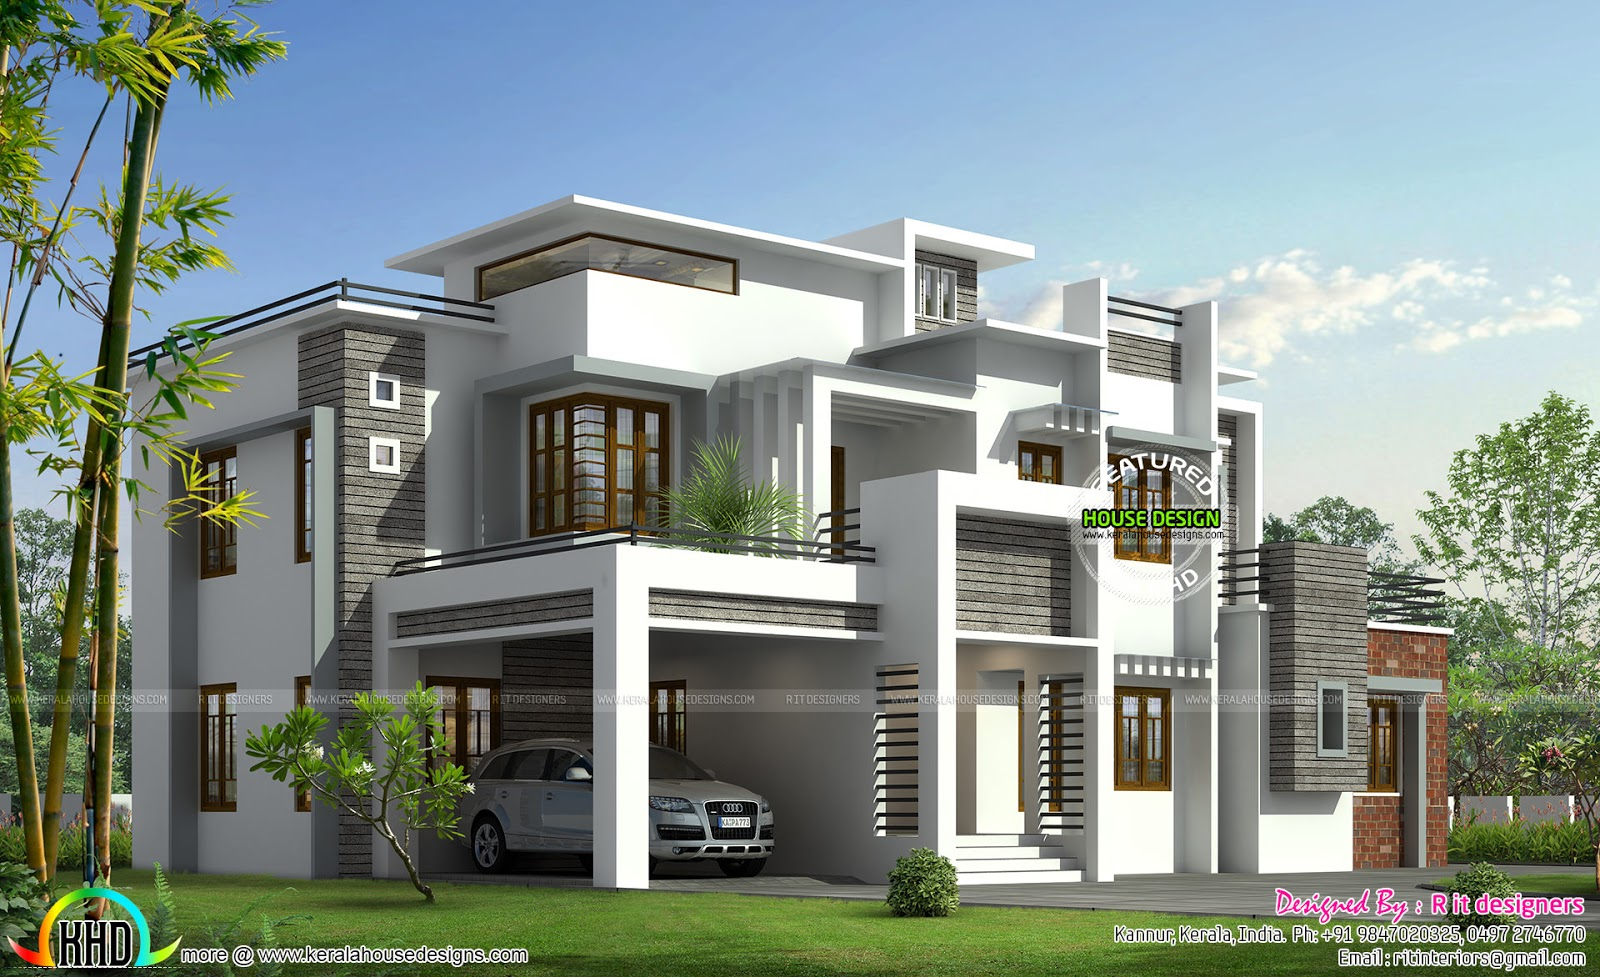 Box model contemporary house kerala home design and for House floor design